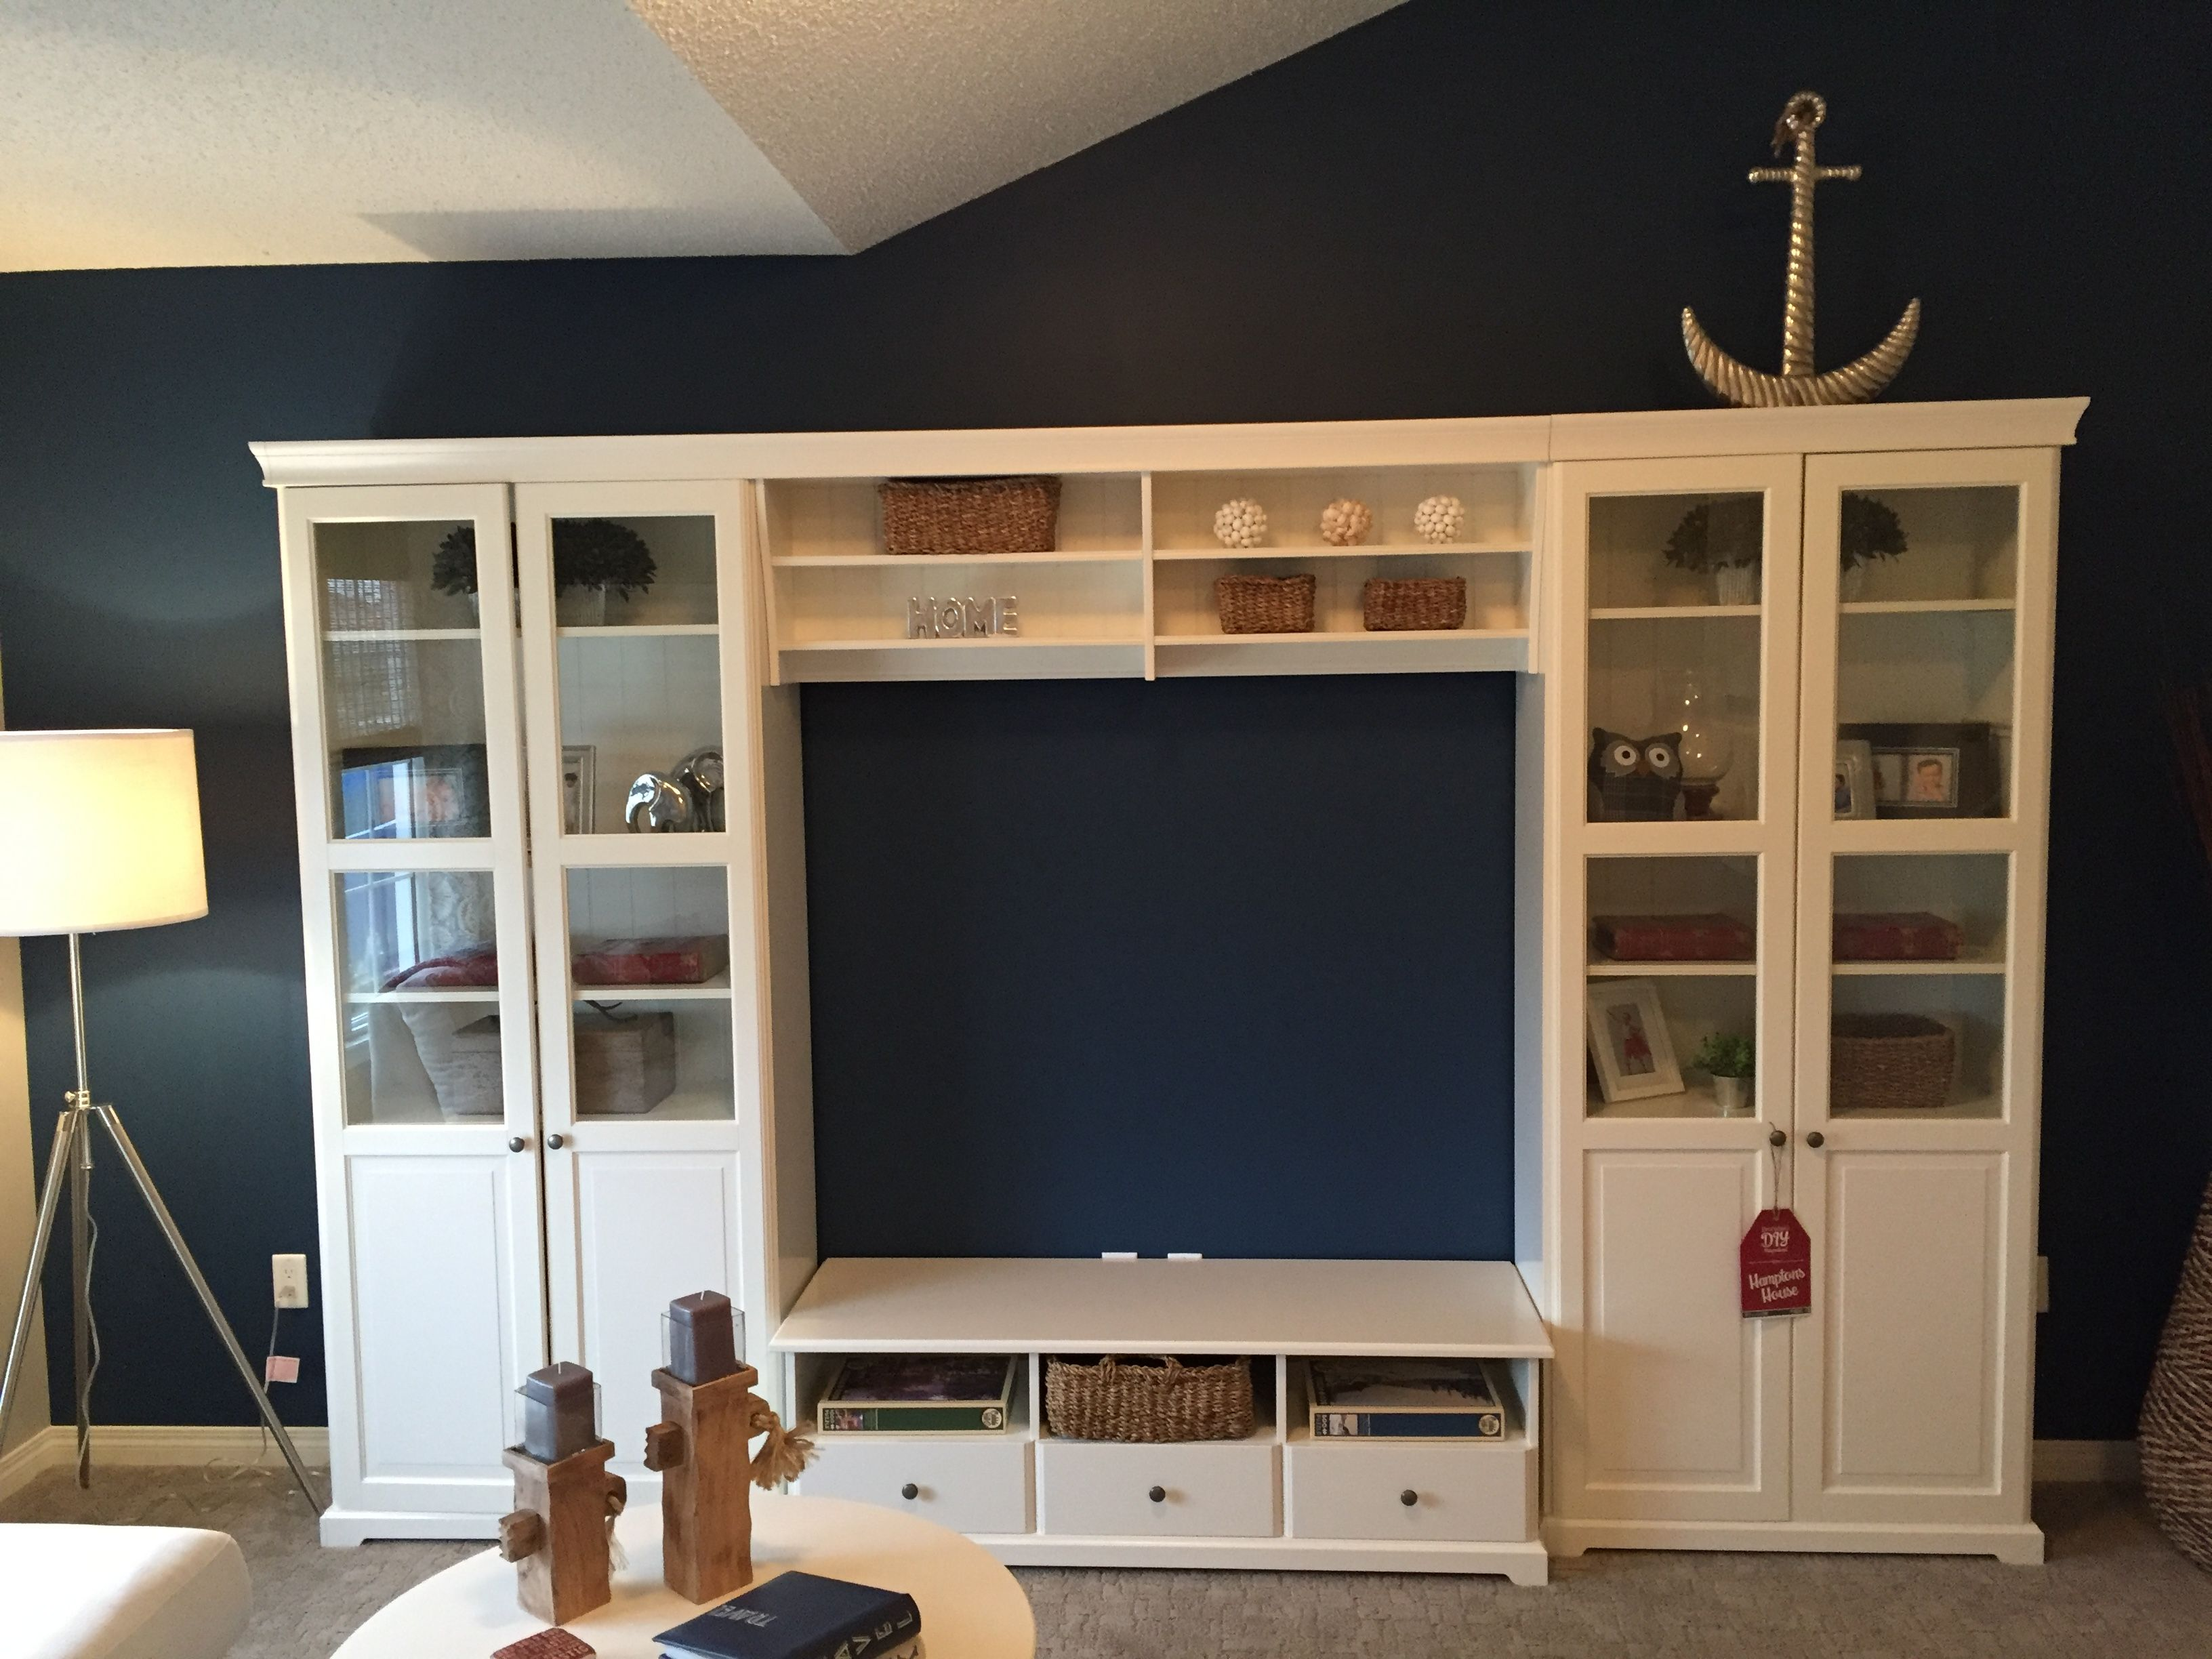 Combinaison Besta Et Liatorp - Our Tv In The Hamptons Inspired Lake Summerside Show Home Is The [mjhdah]https://i.pinimg.com/originals/b7/b7/33/b7b7333ad3addd763162cadaf689aeb2.jpg